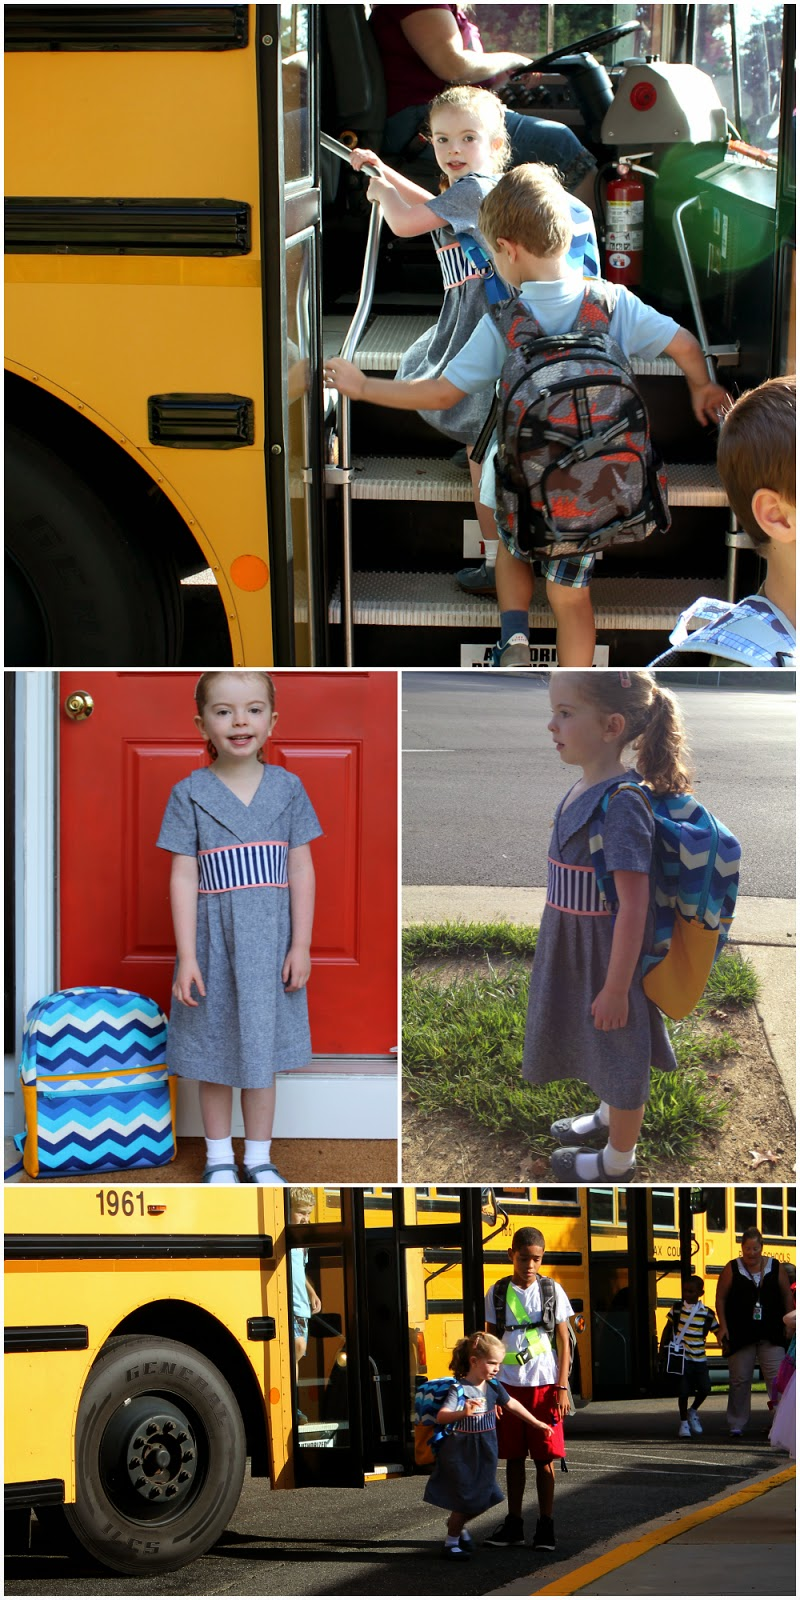 Documenting an Oliver + S Library Dress sewn for the First Day of School (Kindergarten!) in one marathon session 12 hours before the school bus arrived. | The Inspired Wren